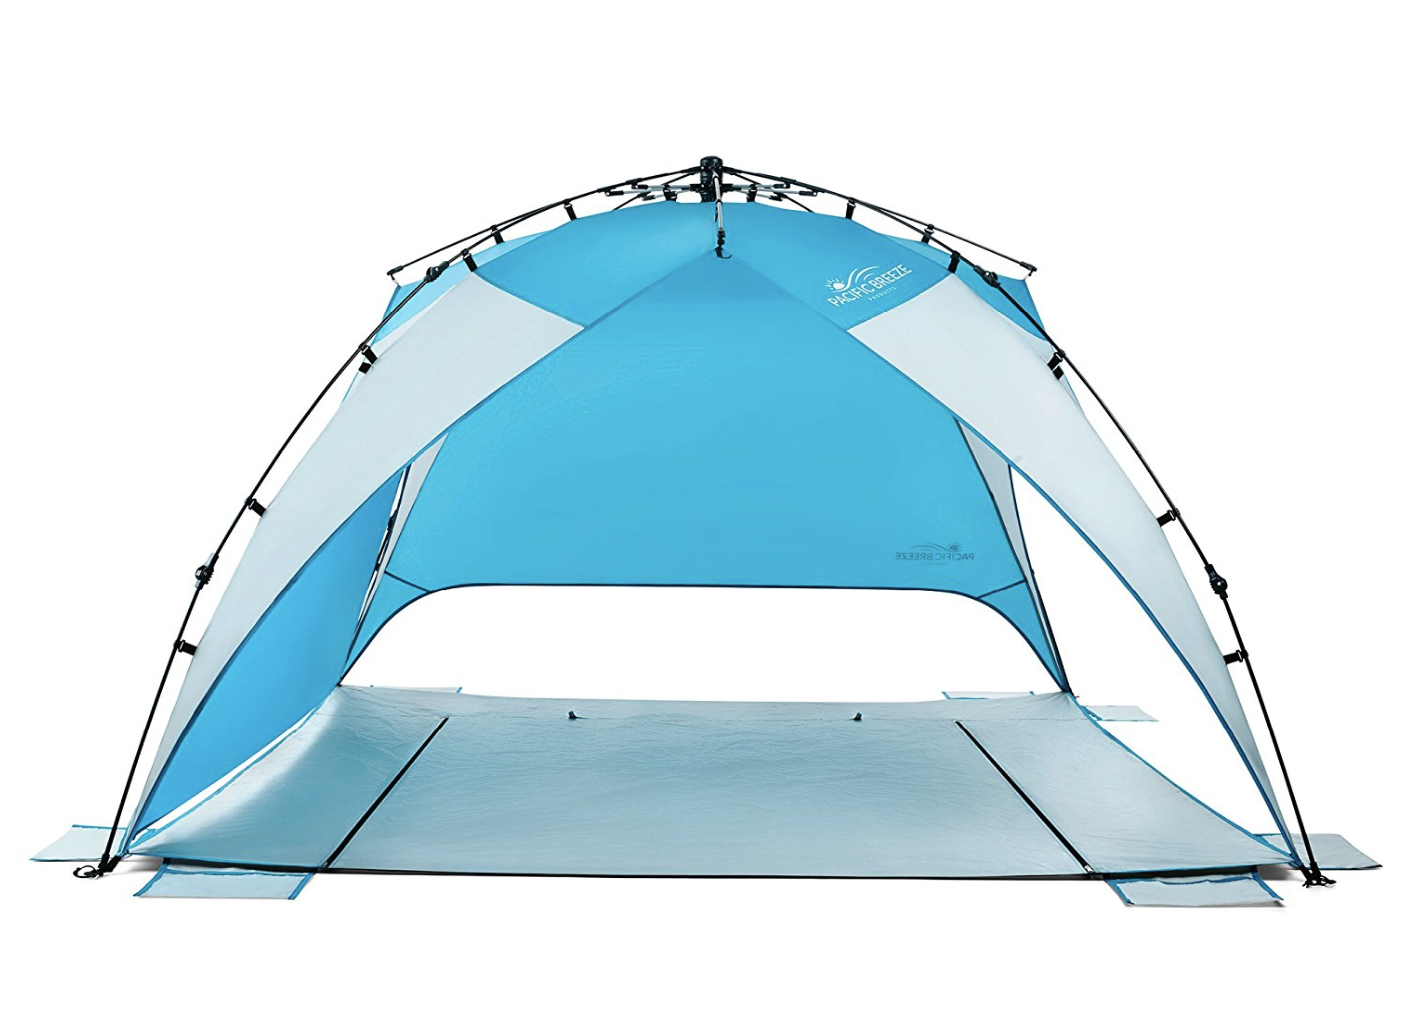 Beach Shelter - Shade is your friend. After all, some parts of your body may have never seen the light of day and will be prone to burning. Stay cool and don't get extra crispy by bringing shelter to a less-than-shady beach!